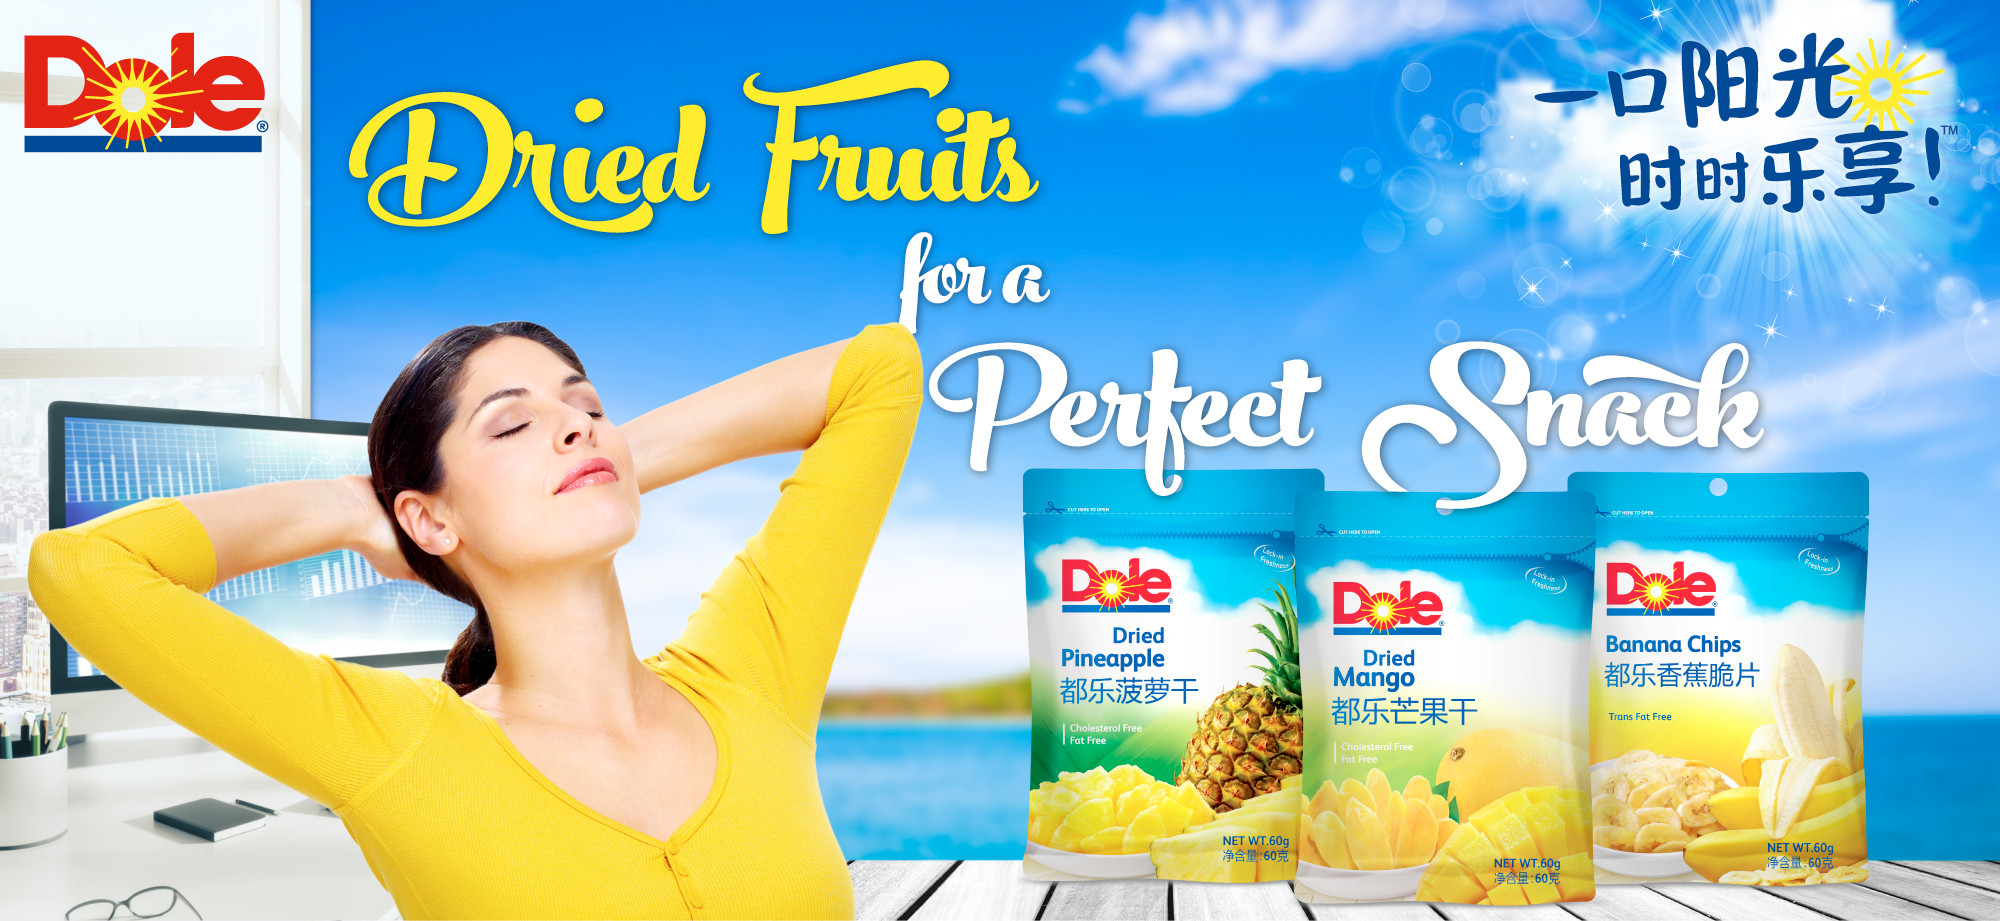 Design-Dole-Dried_Fruits